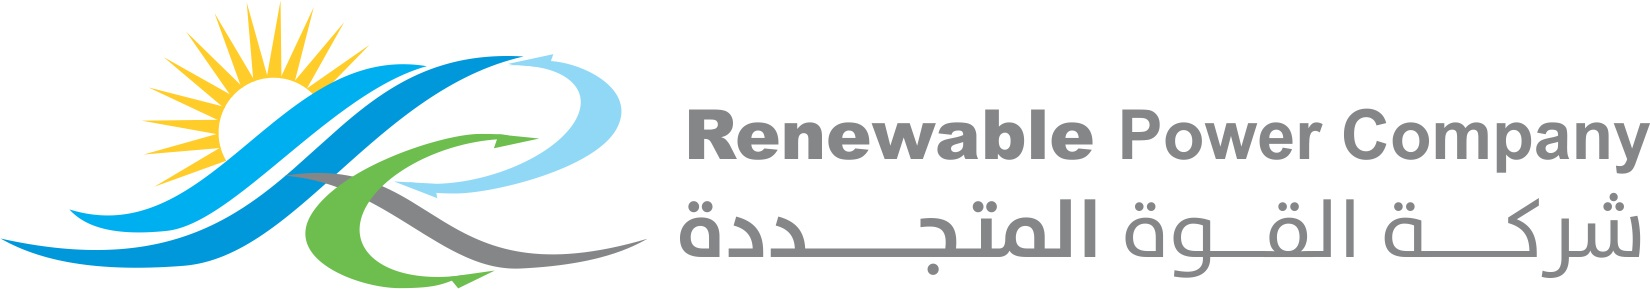 logo Renewable Power